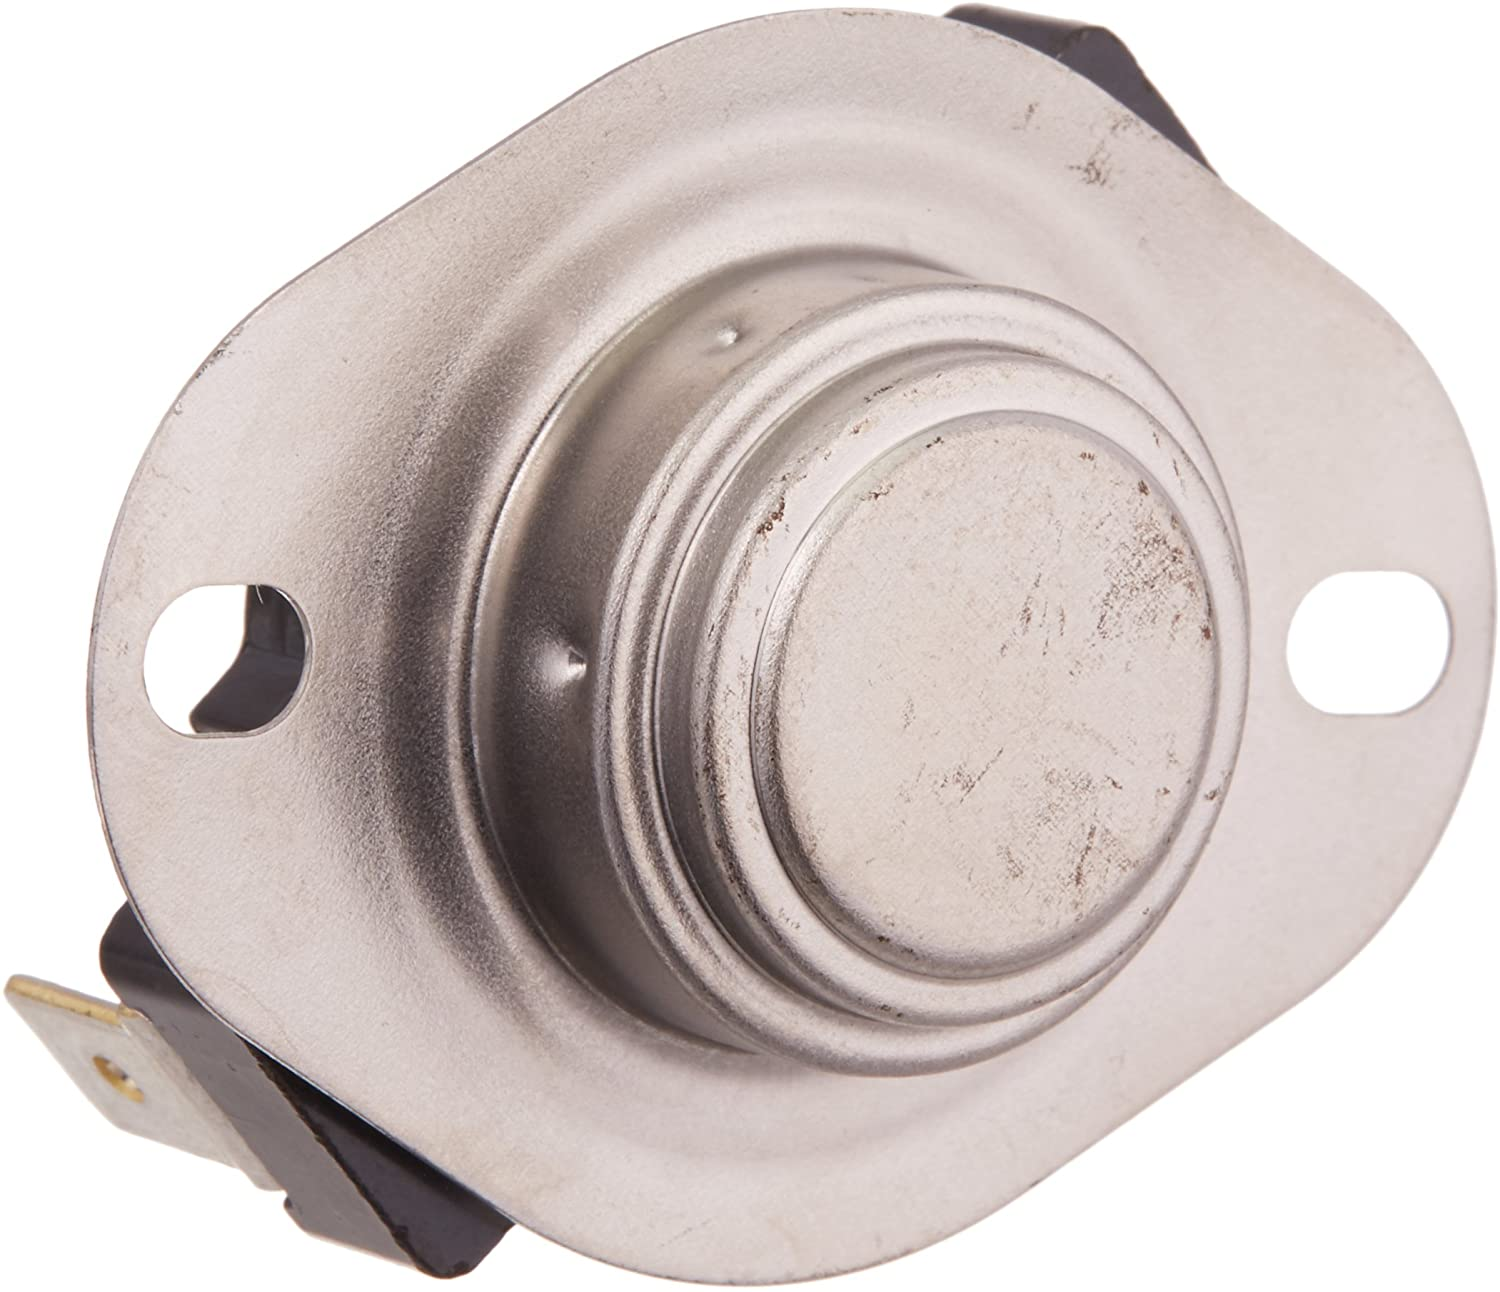 Haier WD-7350-04 Thermostat Temperature